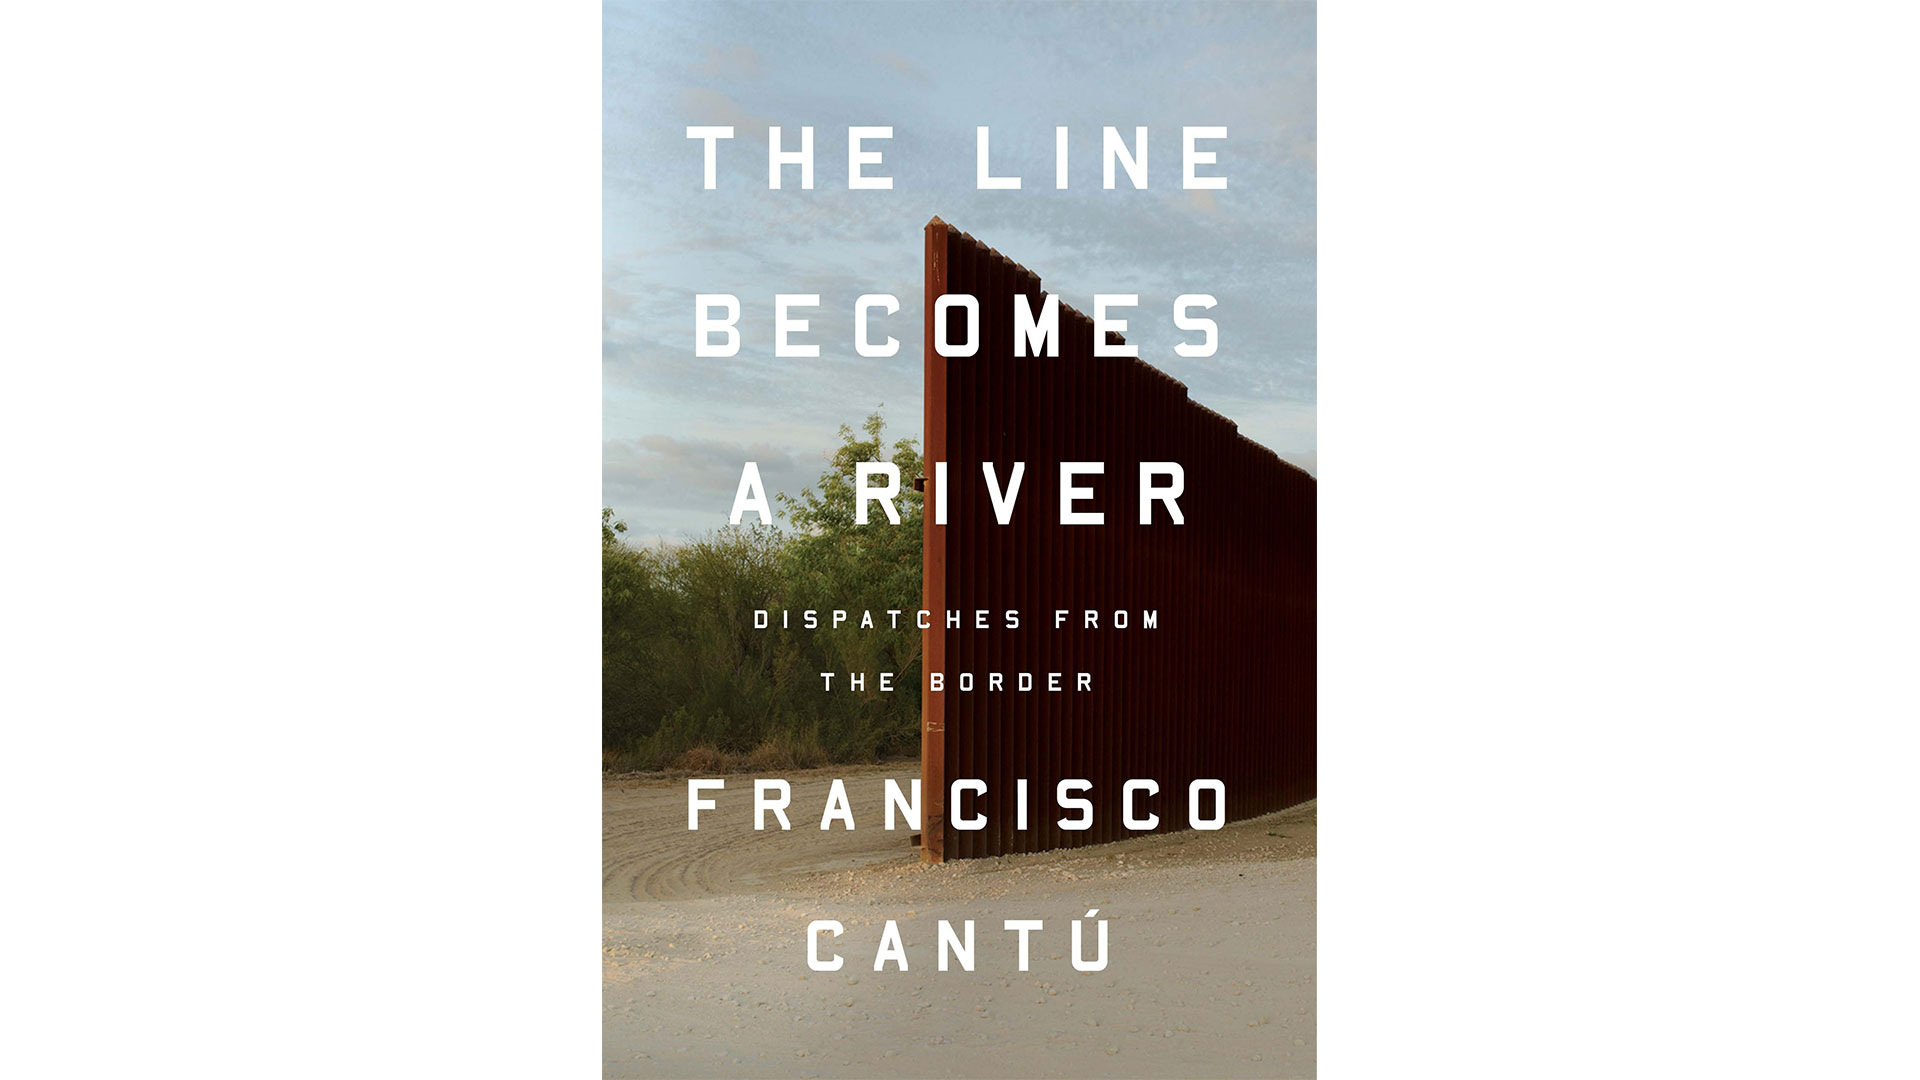 Amazon Best Books 2018 The Line Becomes a River